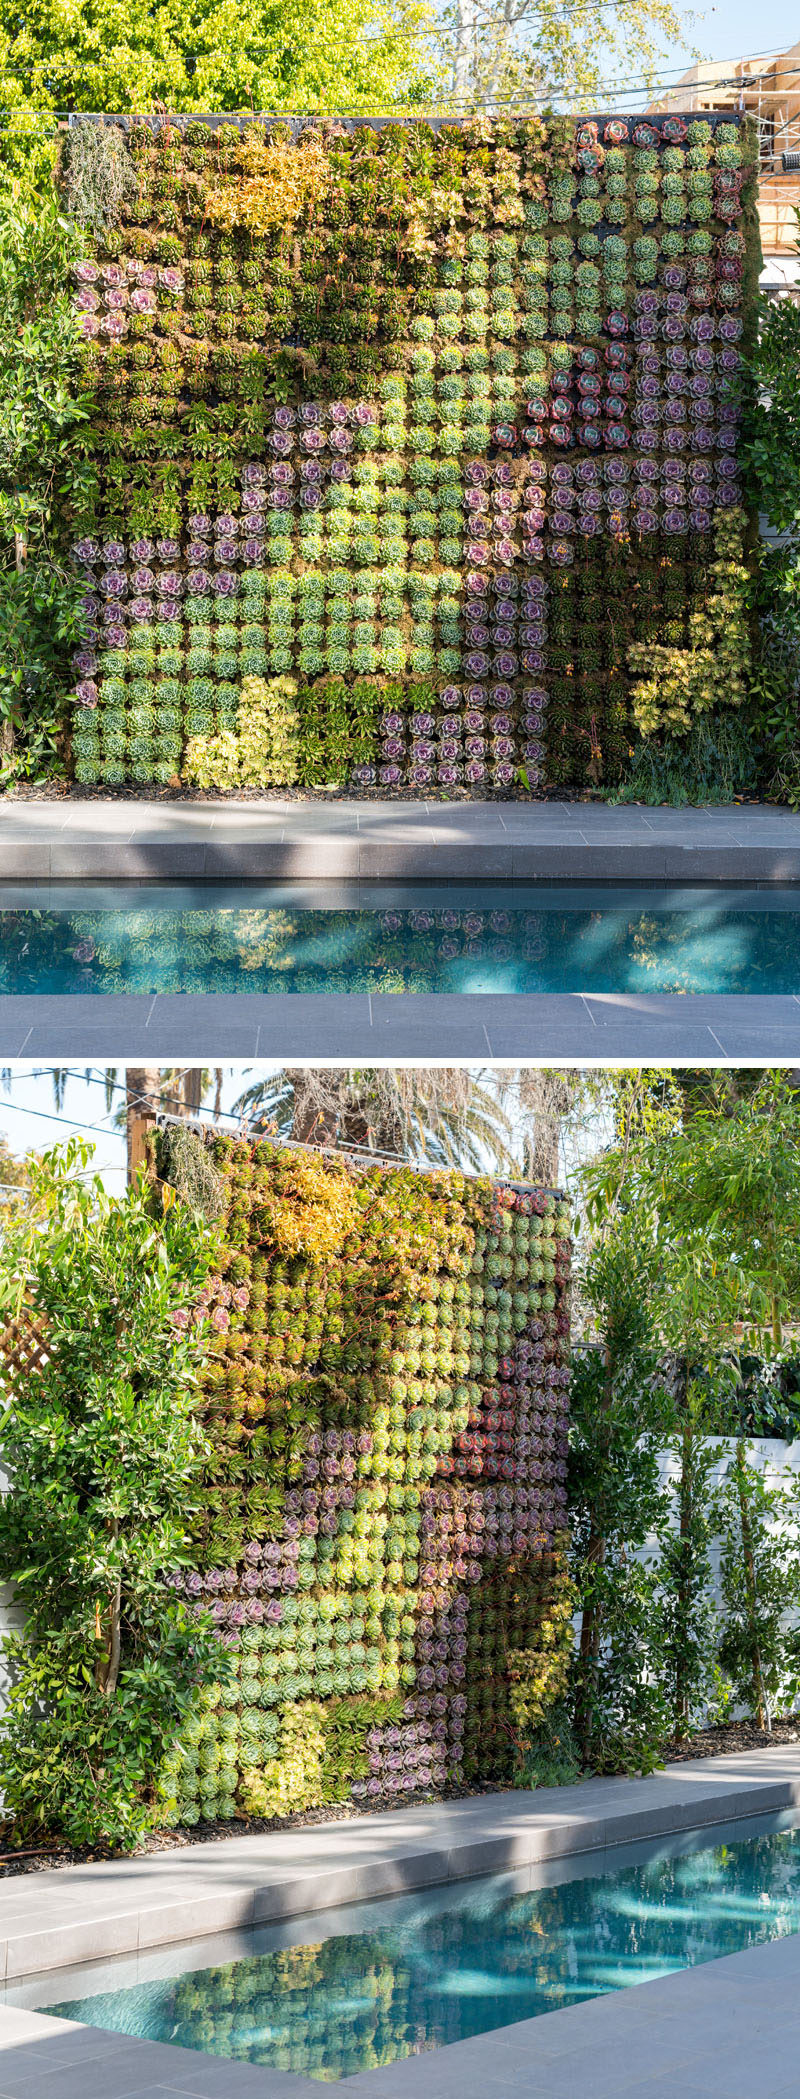 On the wall that runs alongside this modern swimming pool is a patterned green wall that's filled with succulents. #GreenWall #Succulents #Garden